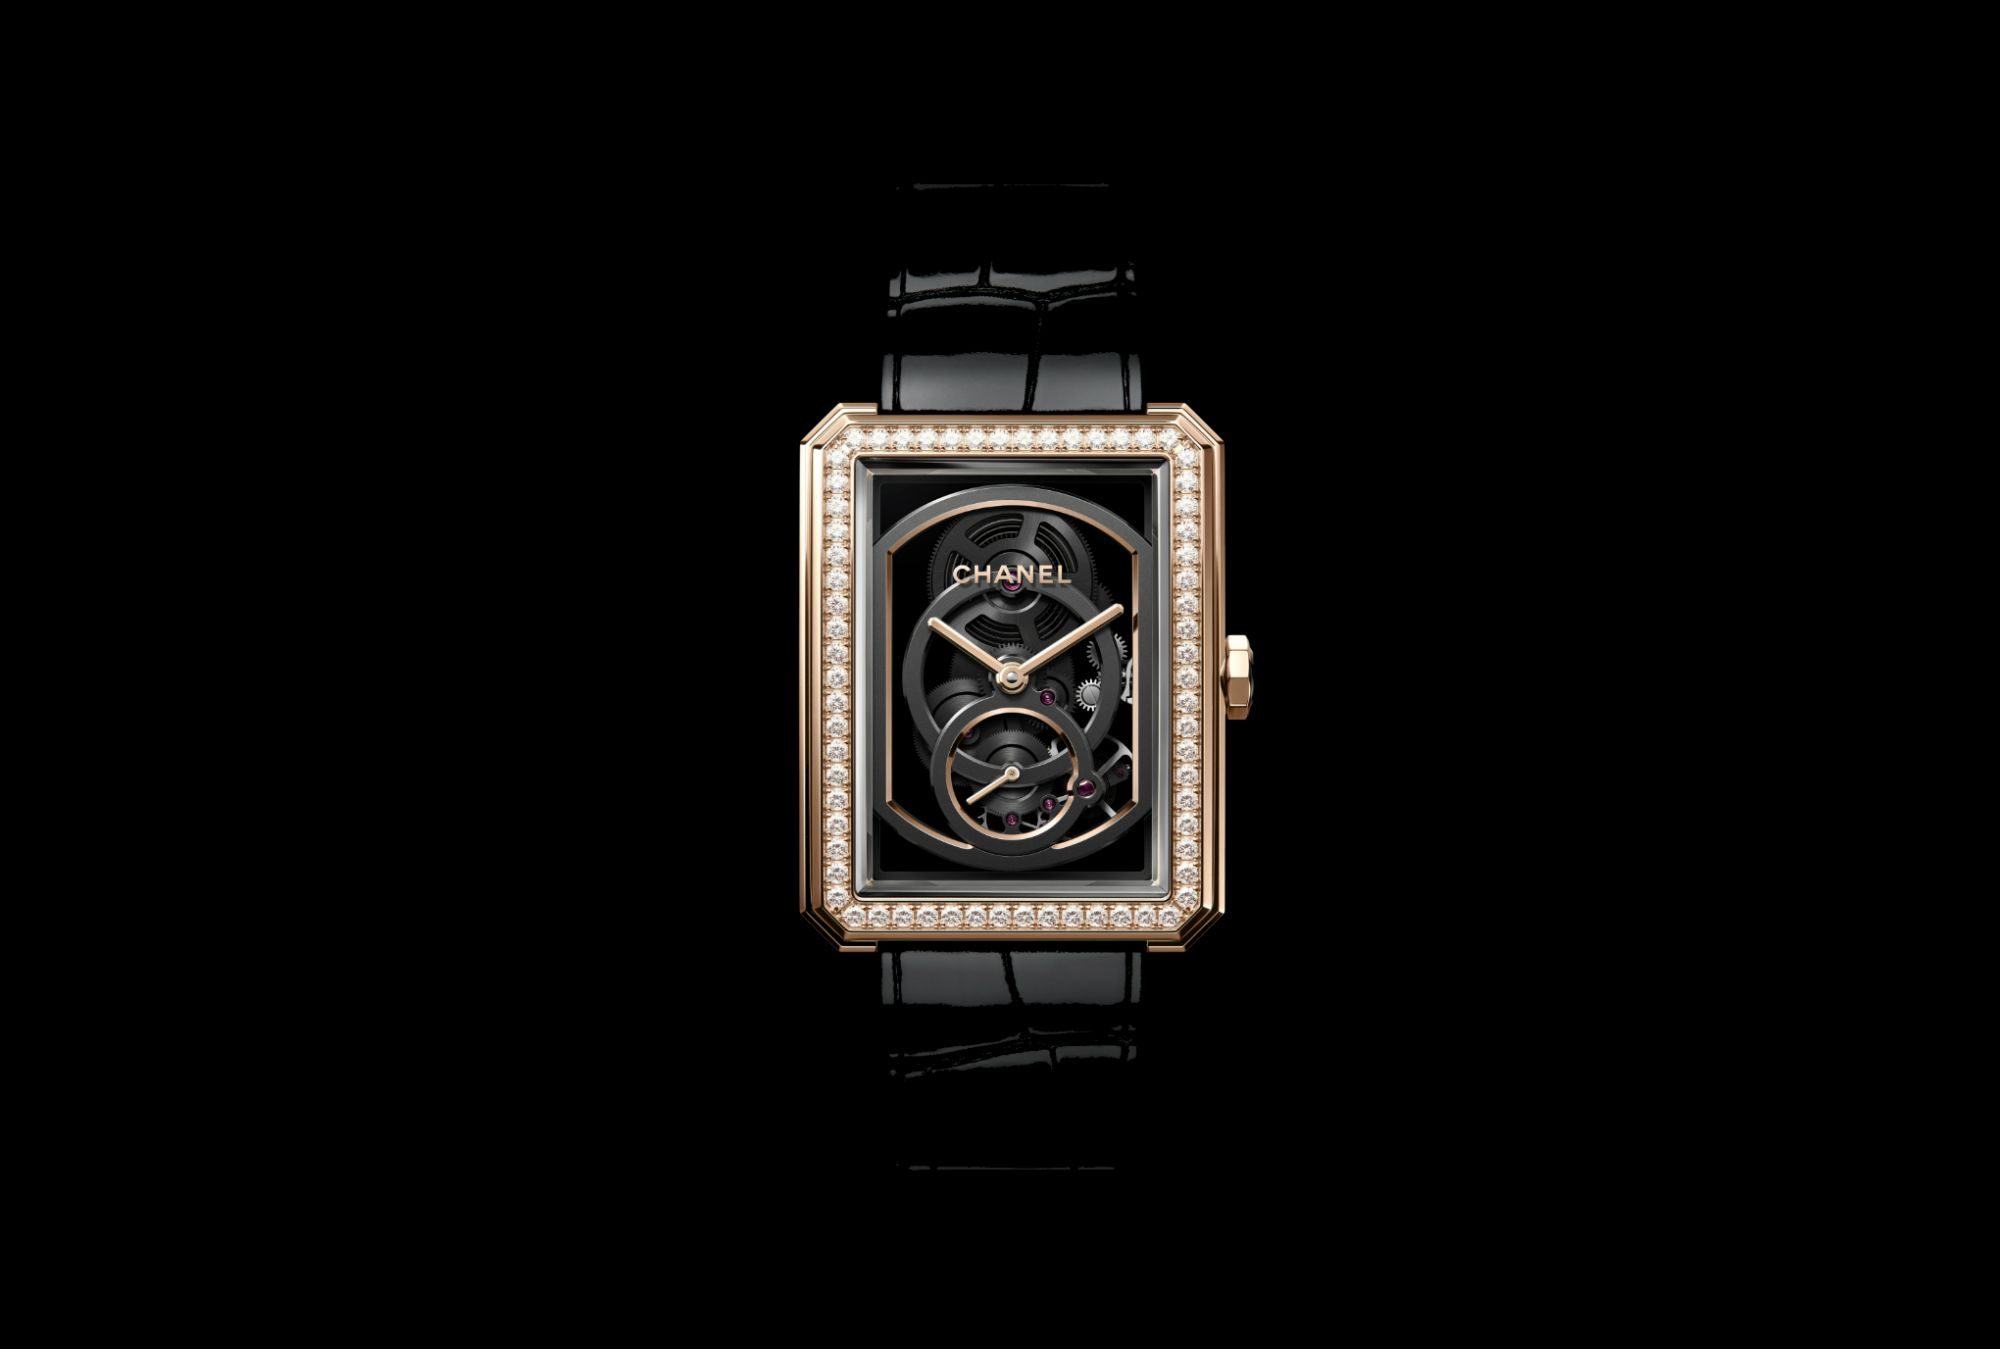 New Skeleton Movement For Chanel's Boy.Friend Watch